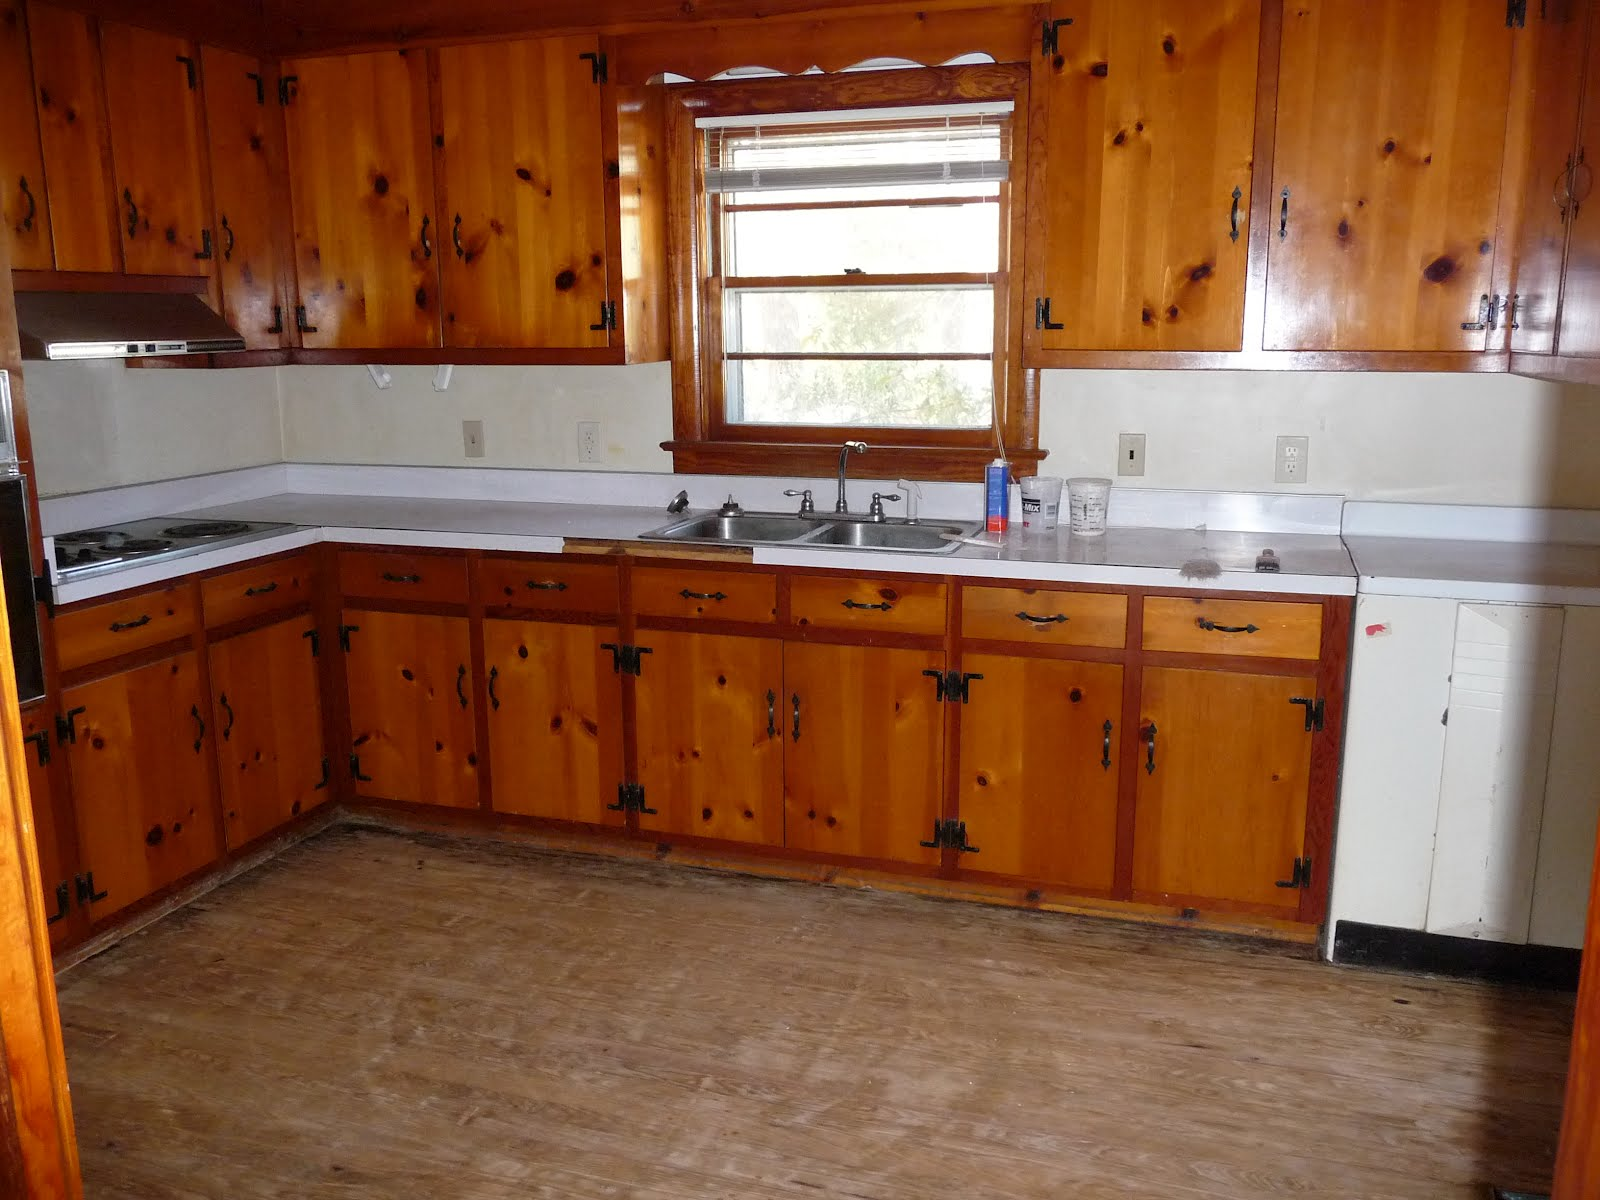 Balding Brothers: Project: Update a Traditional 1950's Ranch